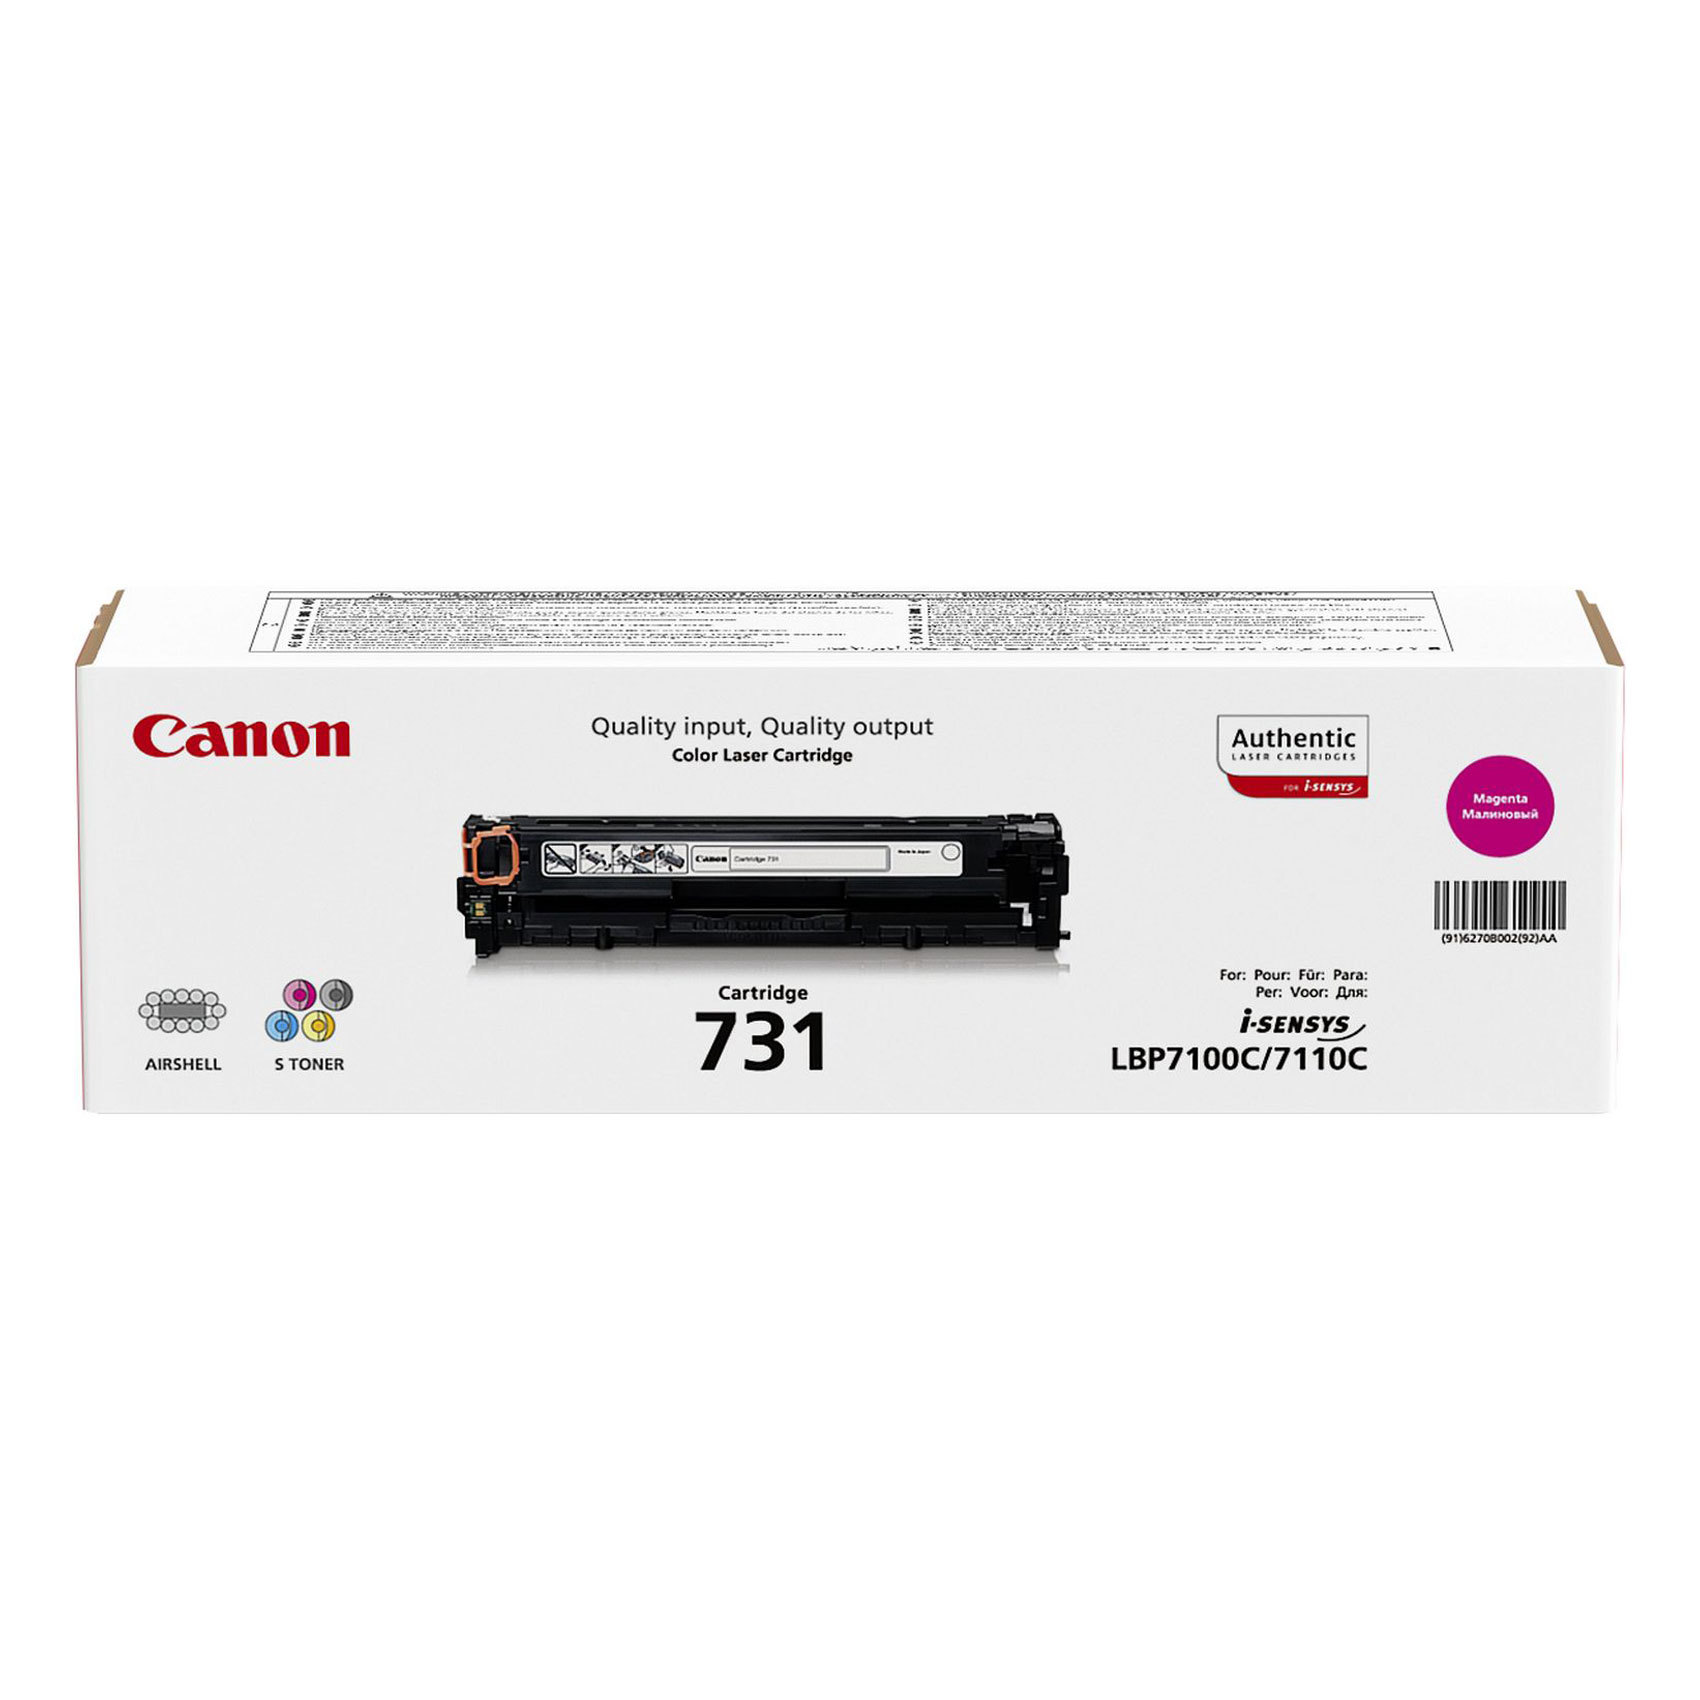 Buy Canon Toner 731 Magenta Online In Uae Carrefour Ink Cartridge Pgi 29 Photo